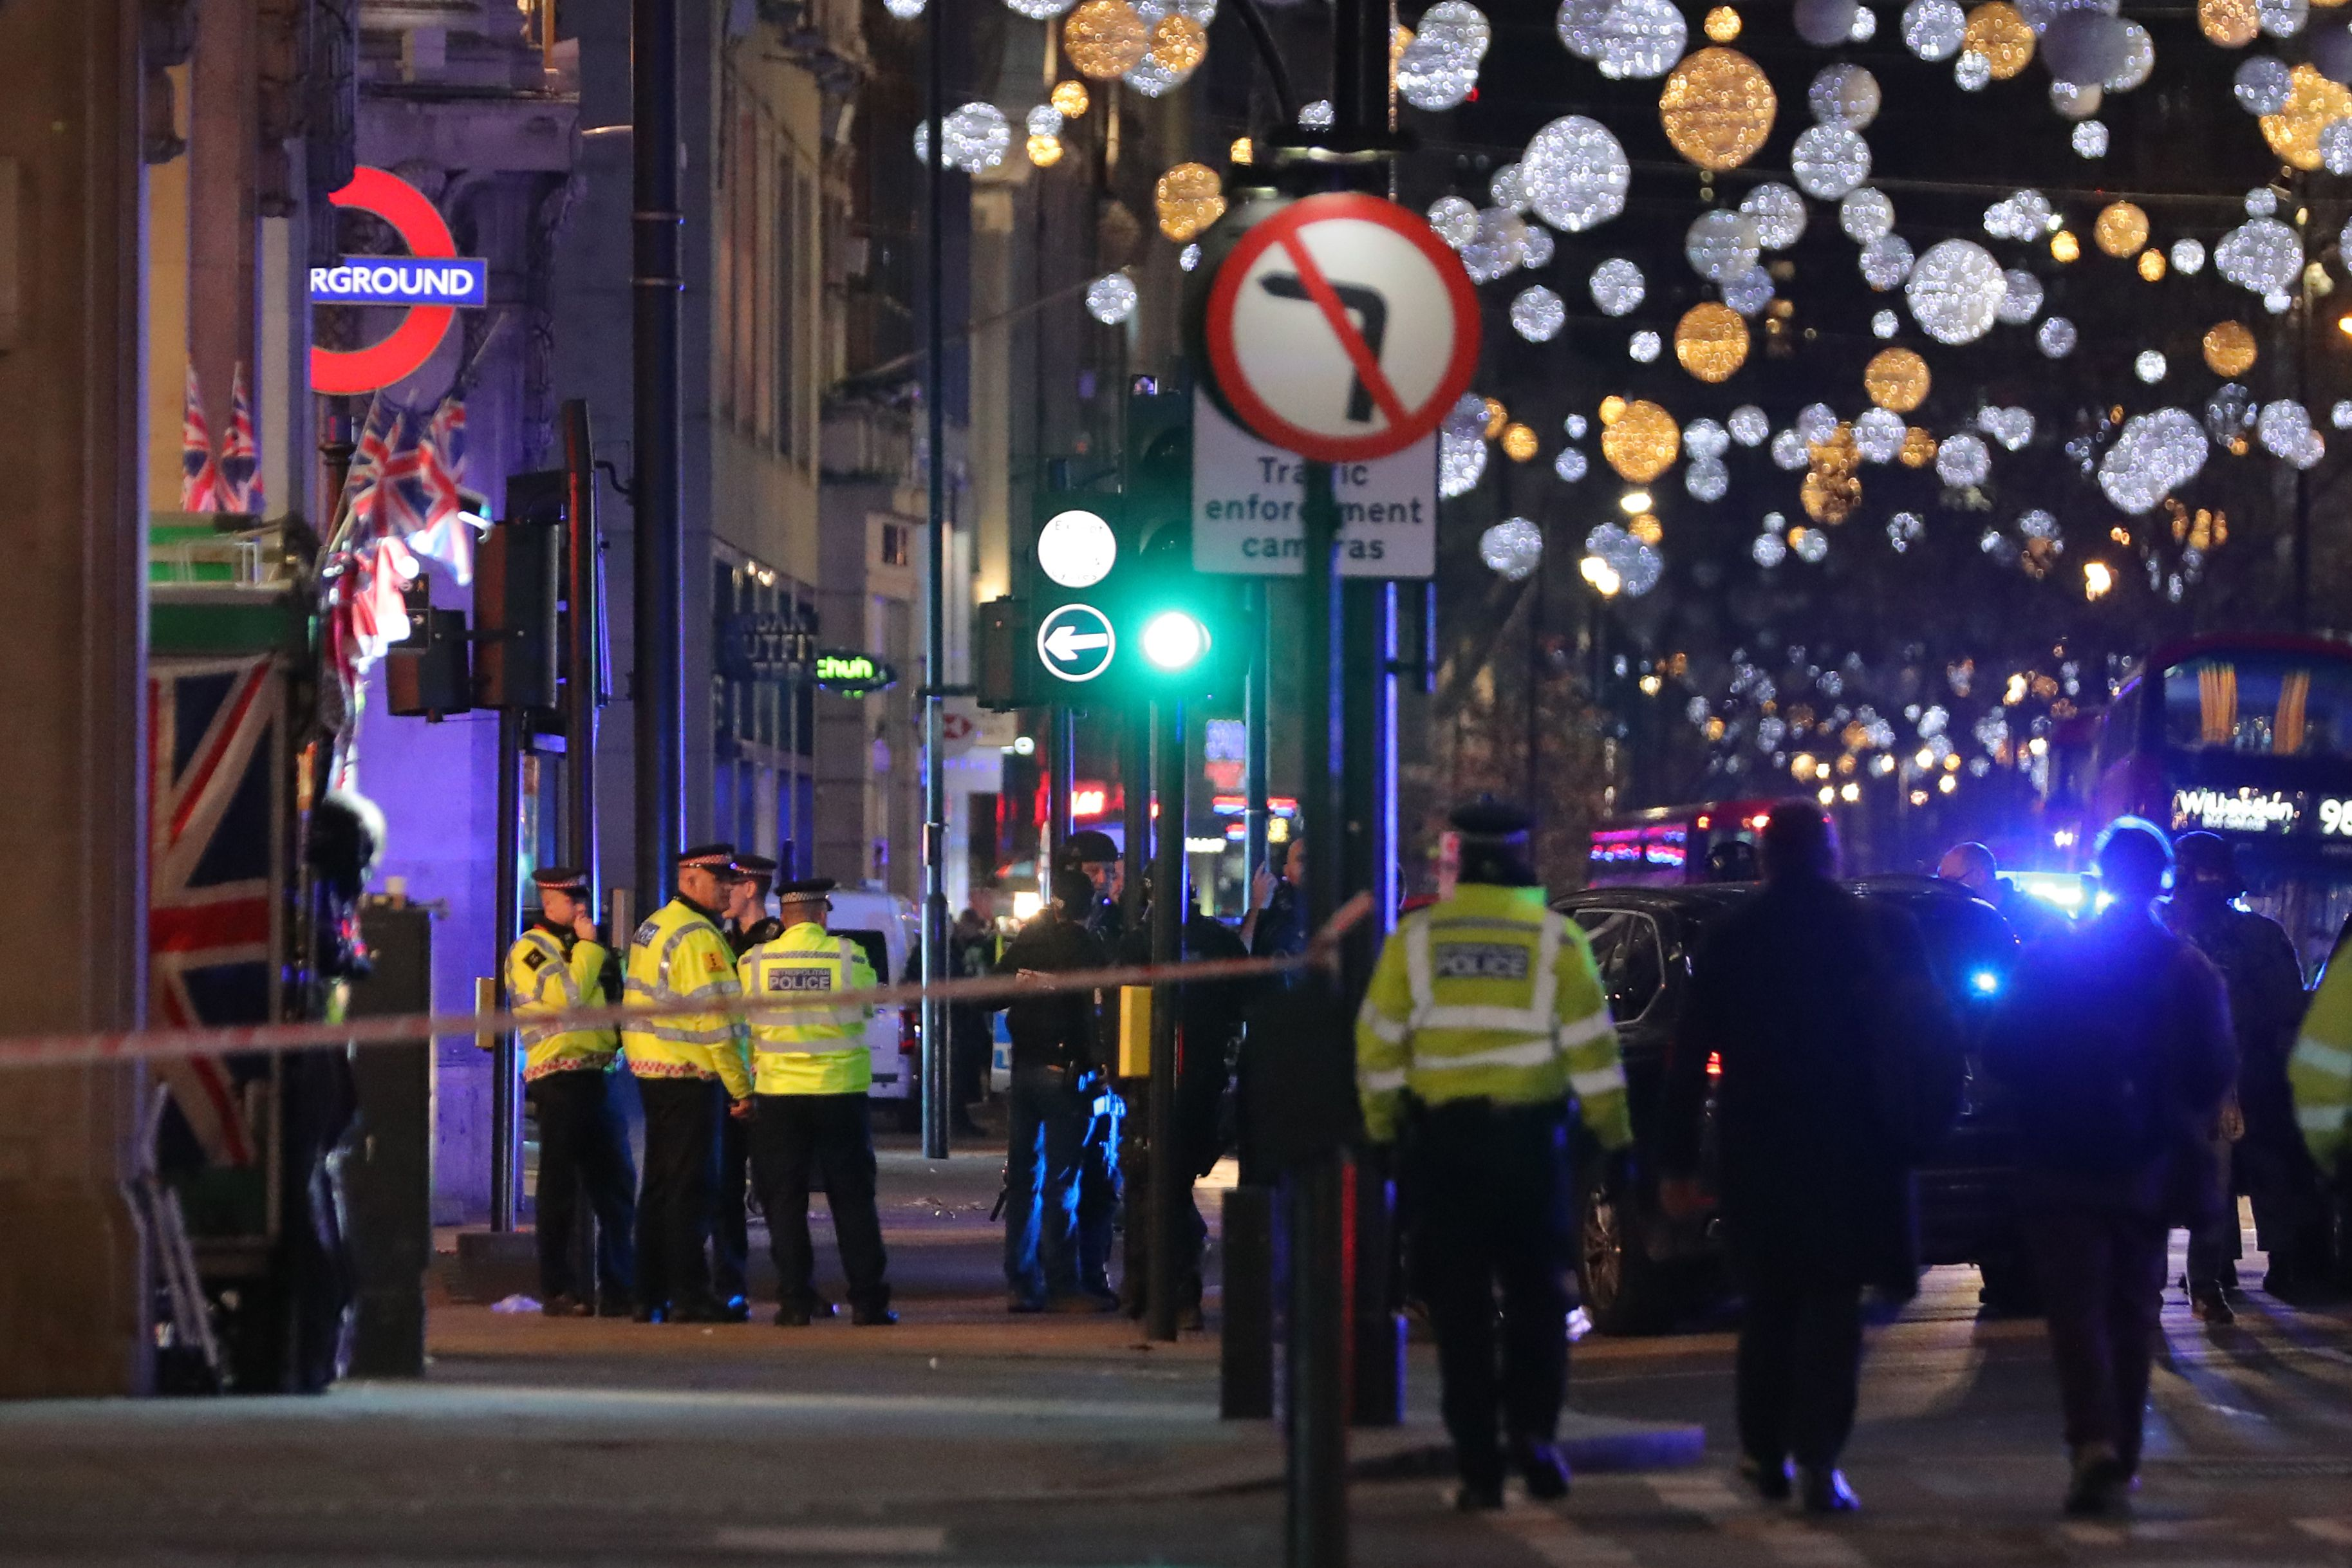 Police set up a cordon outside Oxford Circus underground station as they respond to an incident in central London on November 24, 2017.